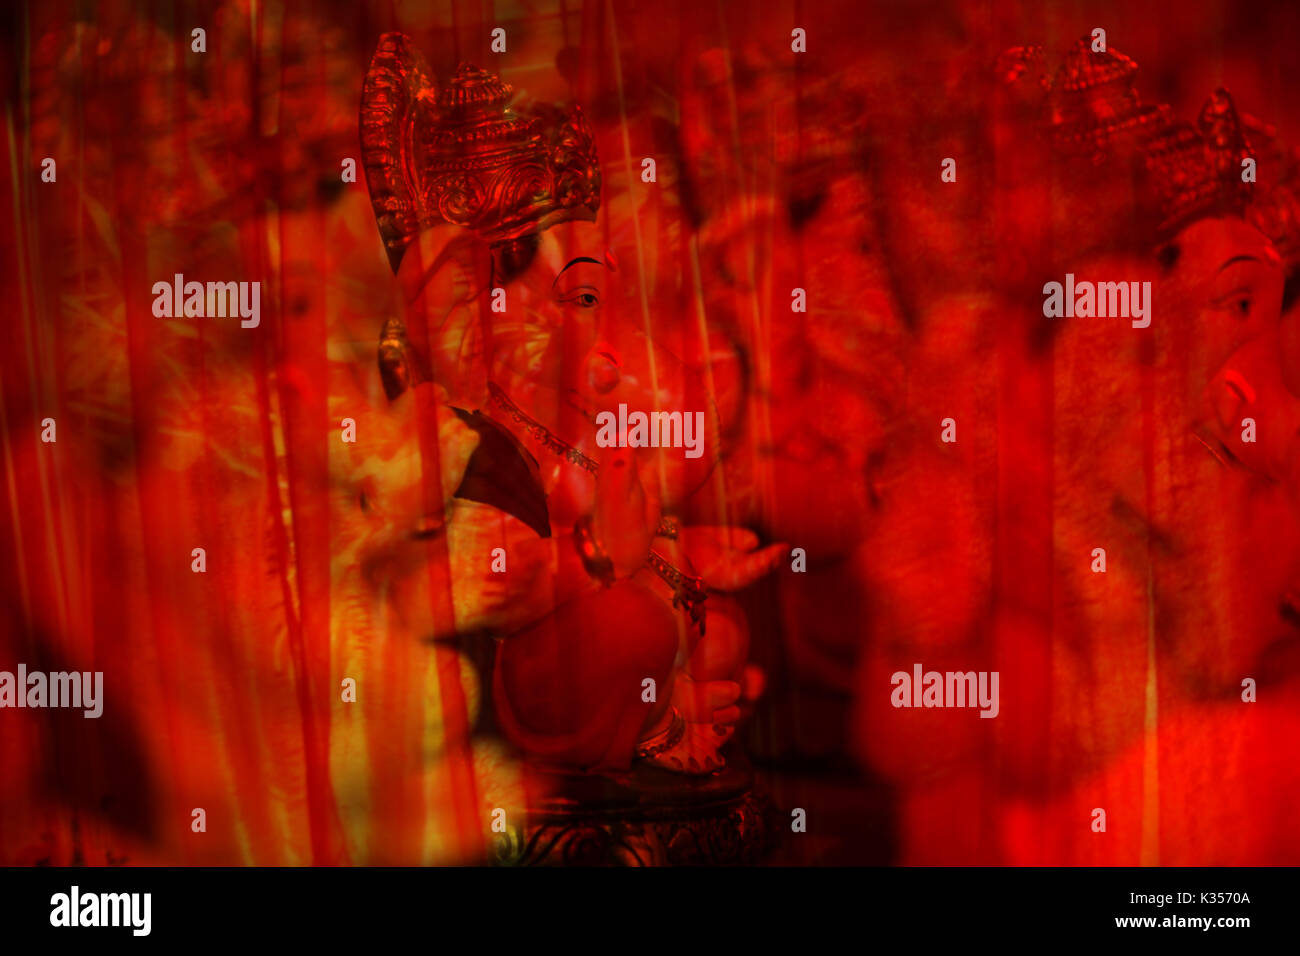 An abstract view of hindu elephant God Ganesha behind red transparent curtain - Stock Image